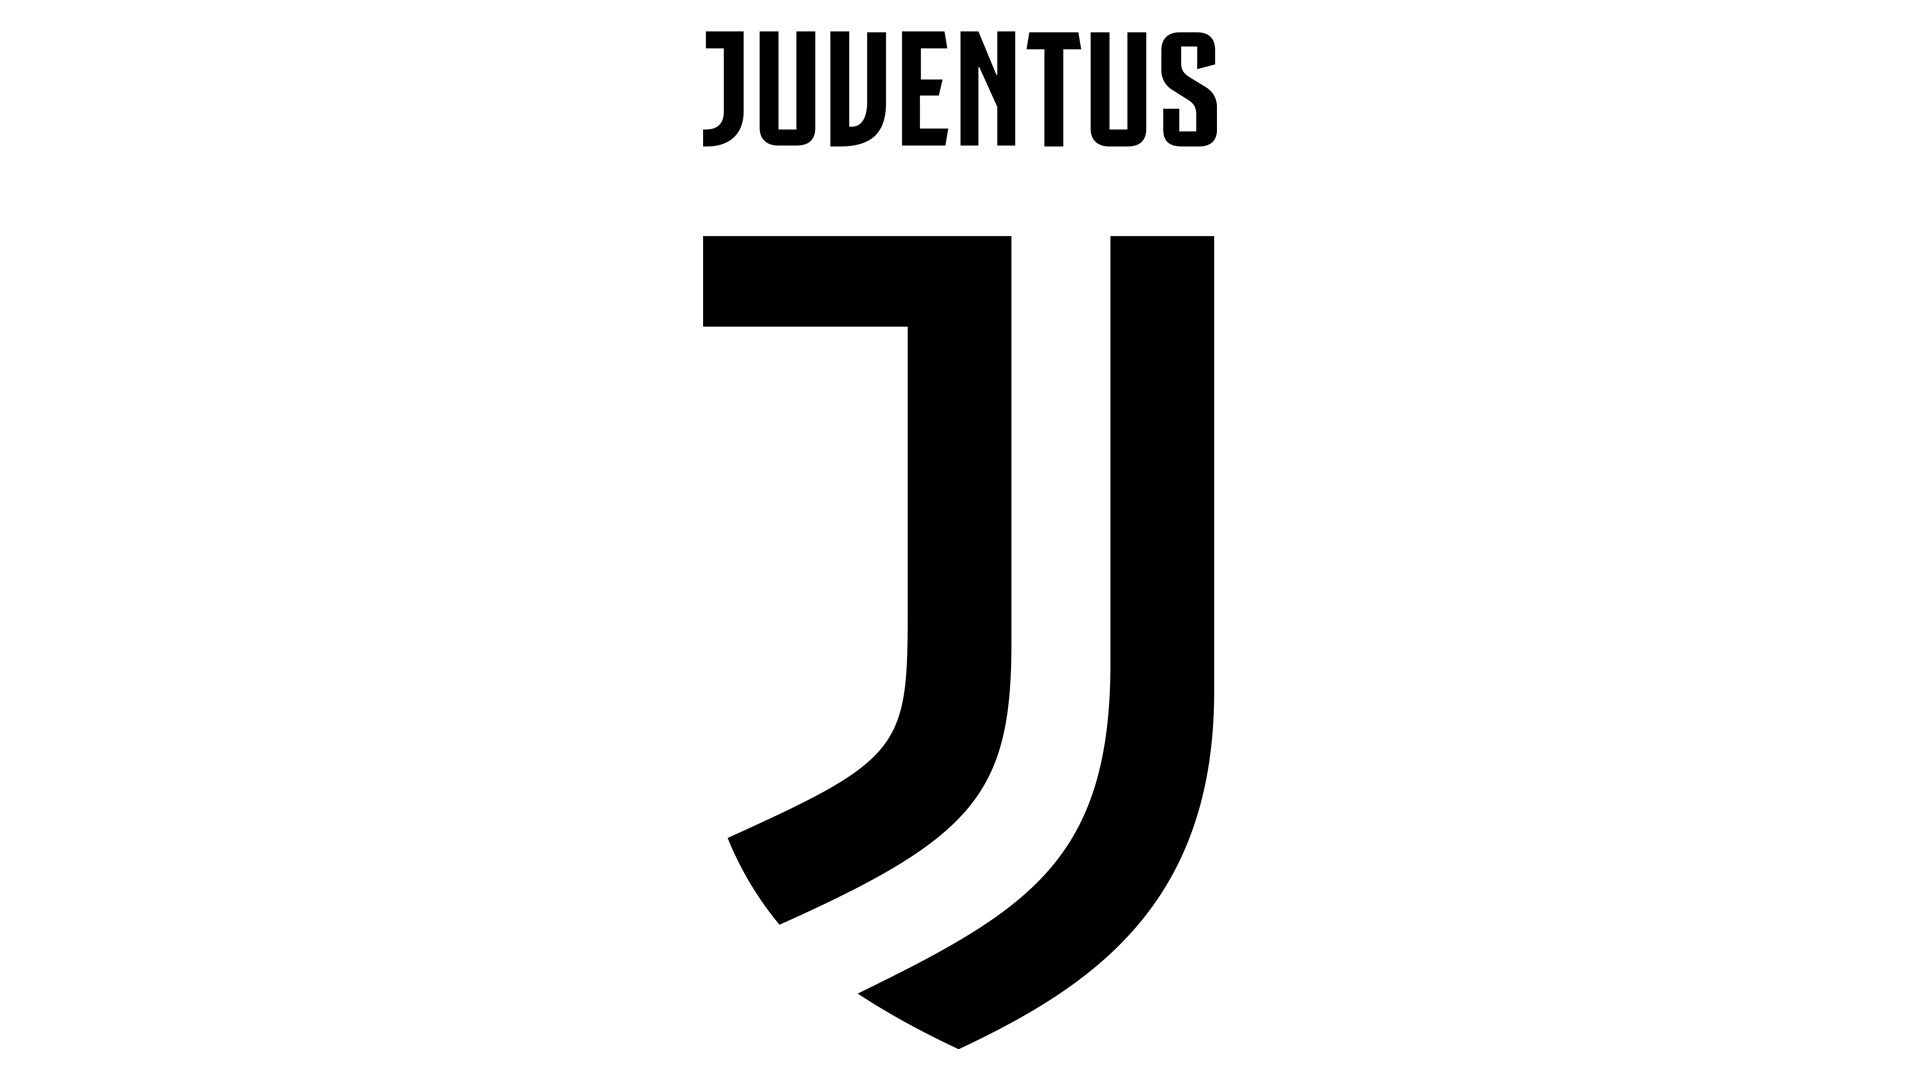 juventus logo histoire et signification evolution symbole juventus. Black Bedroom Furniture Sets. Home Design Ideas